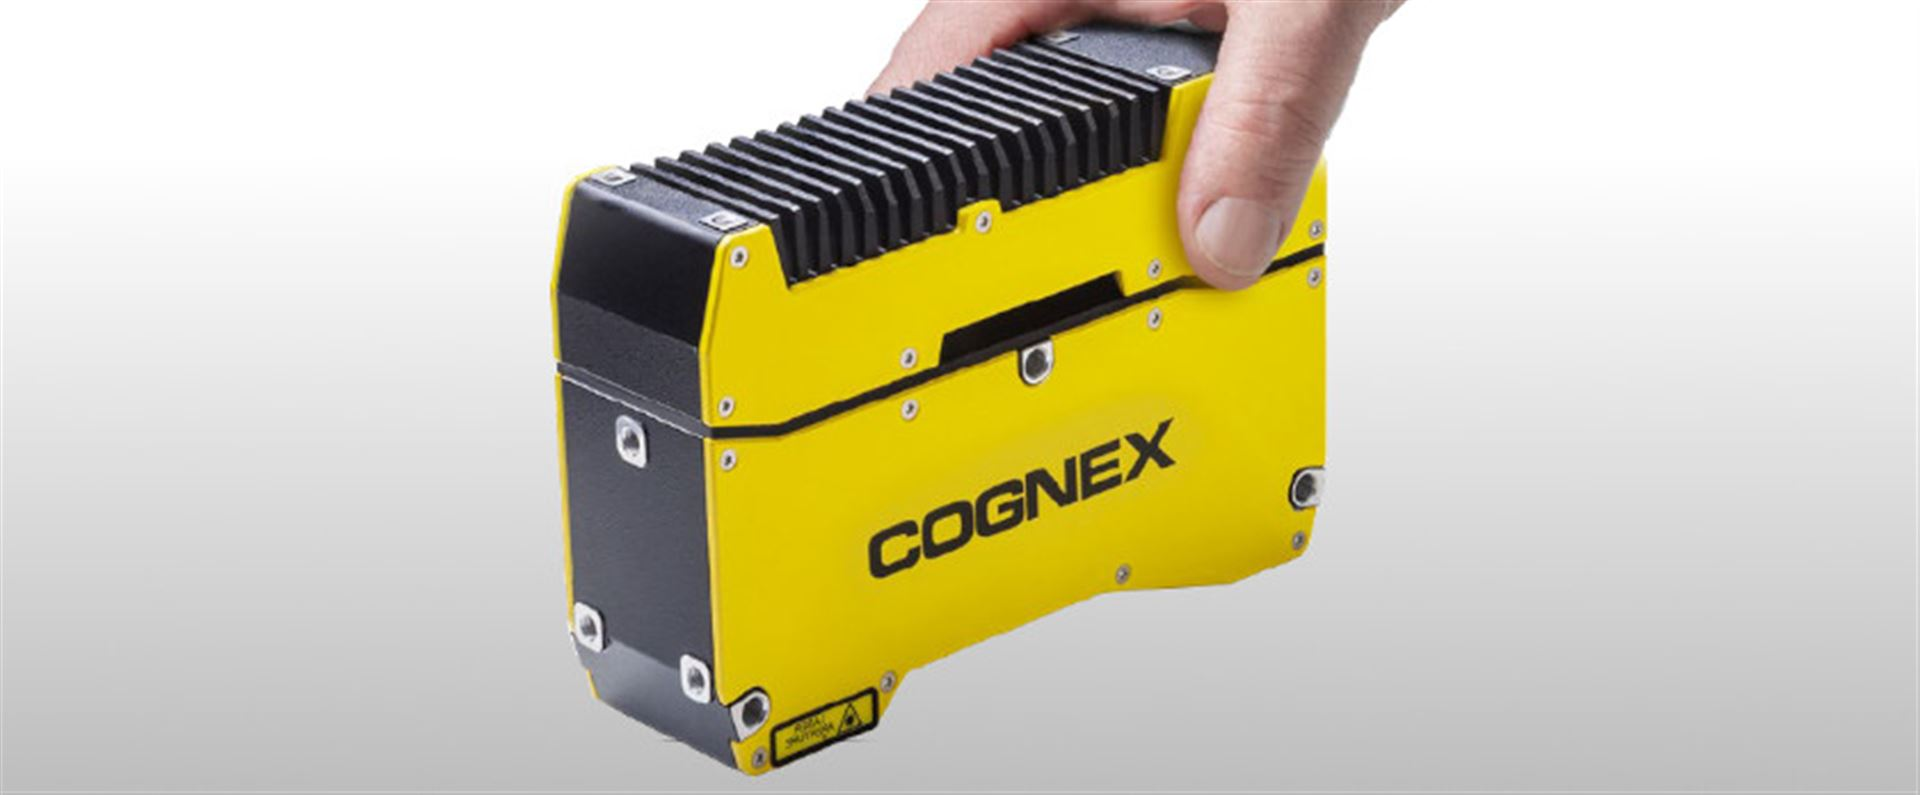 Cognex In-Sight 3D-L4000, the all-in-one machine vision system